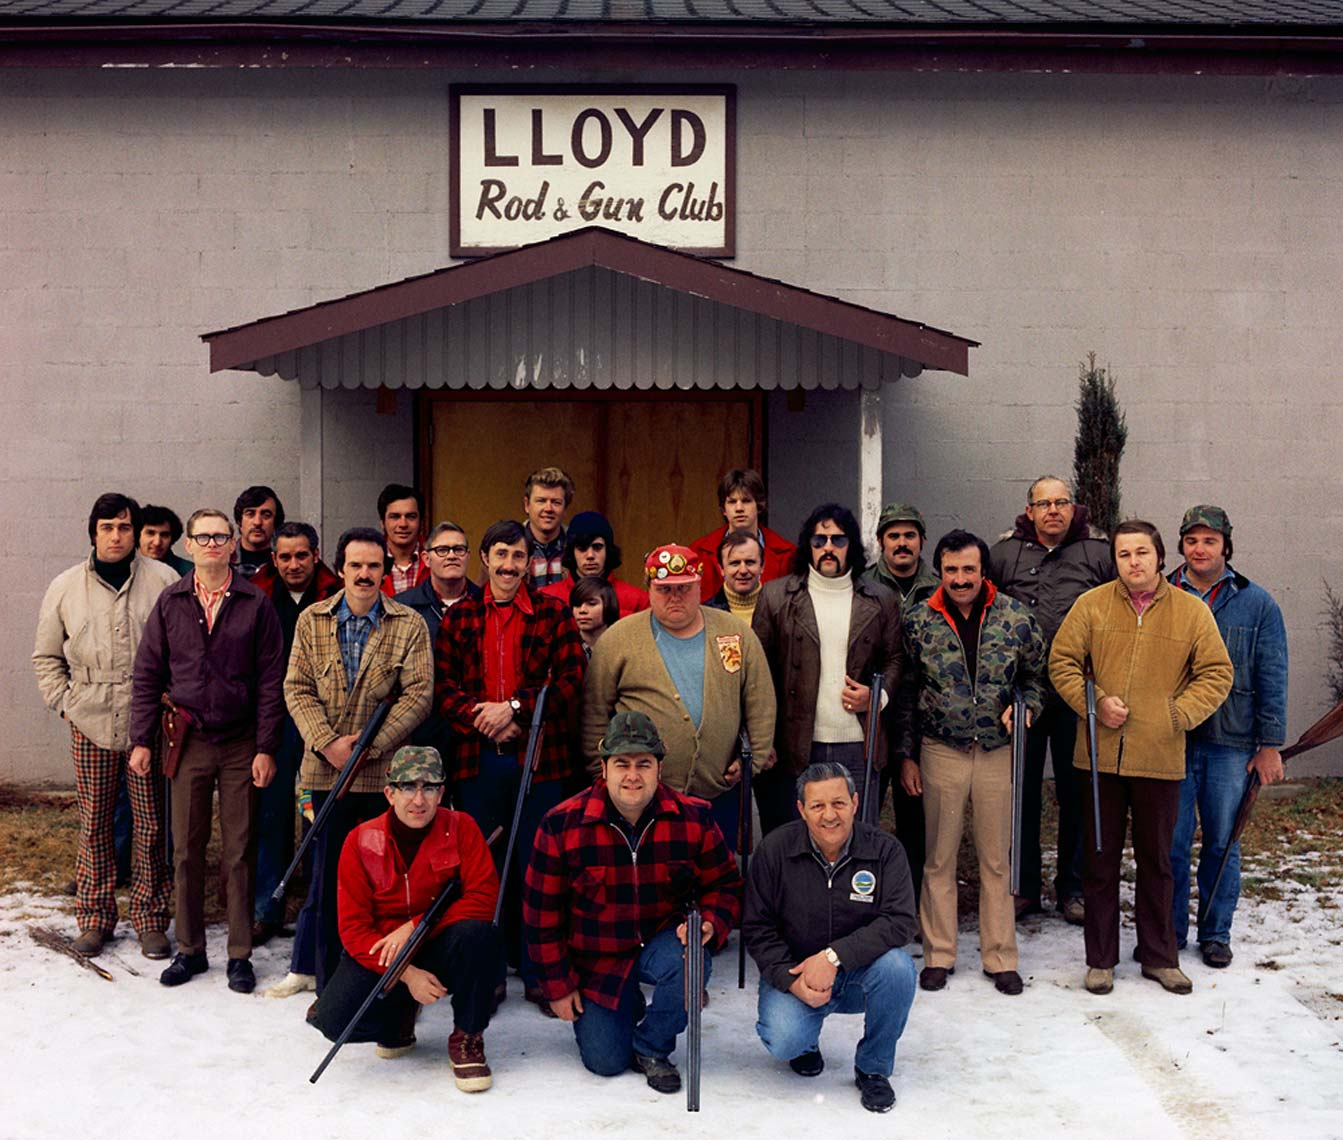 LLOYD ROD AND GUN CLUB; HIGHLAND, NY